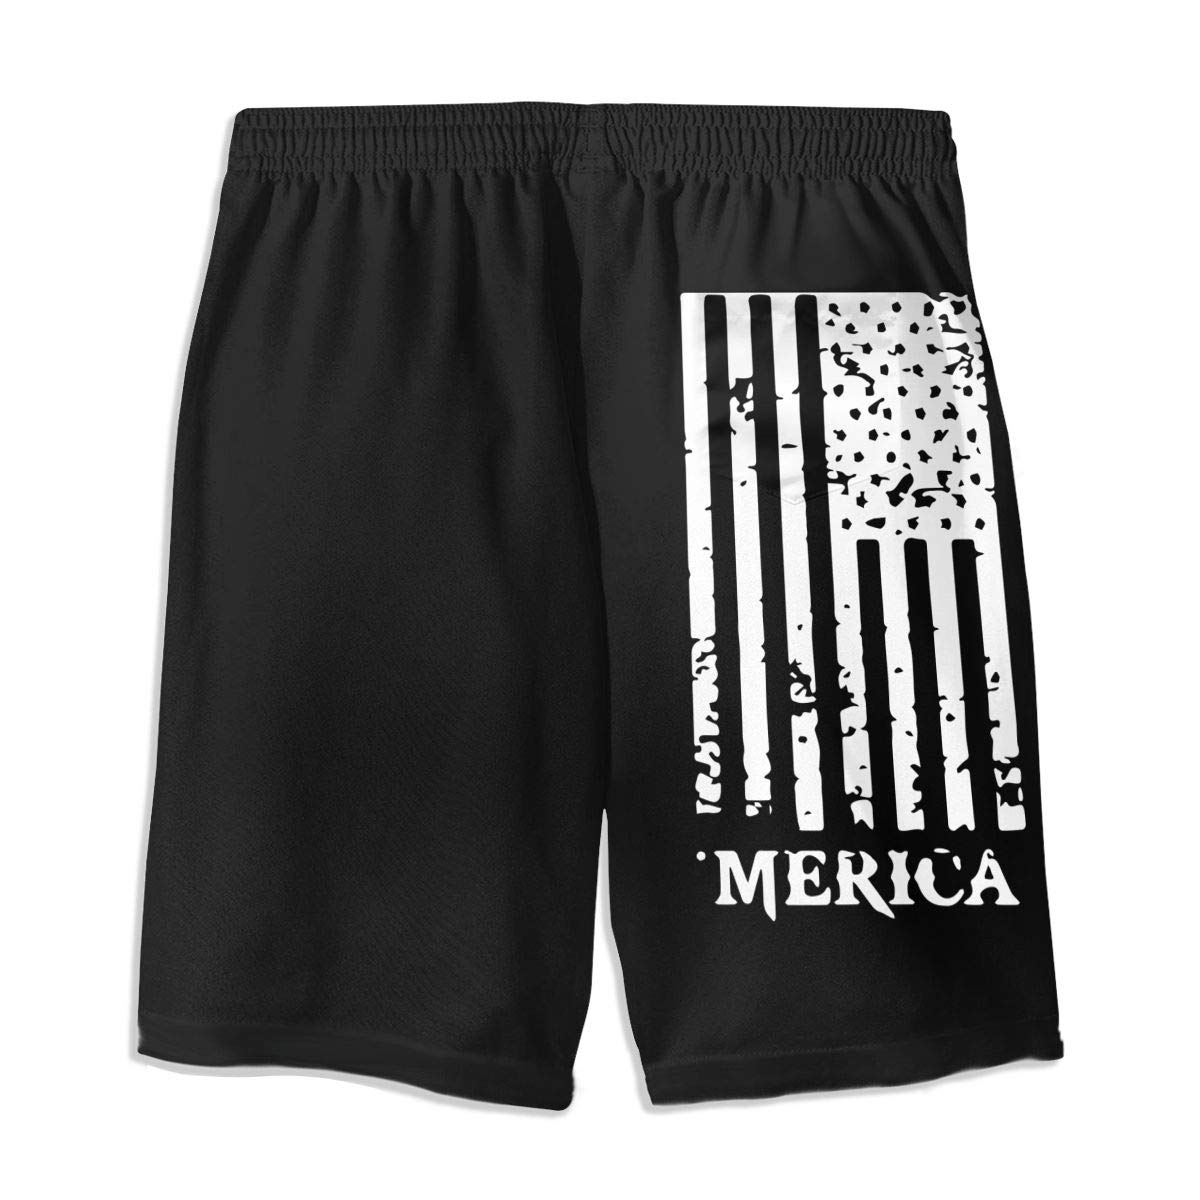 COLSHOORTS Flag of Merica Mens Hawaiian Shorts Quick Dry Summer 3D Printed Elastic Beach Trunks Aloha Short with Pocket